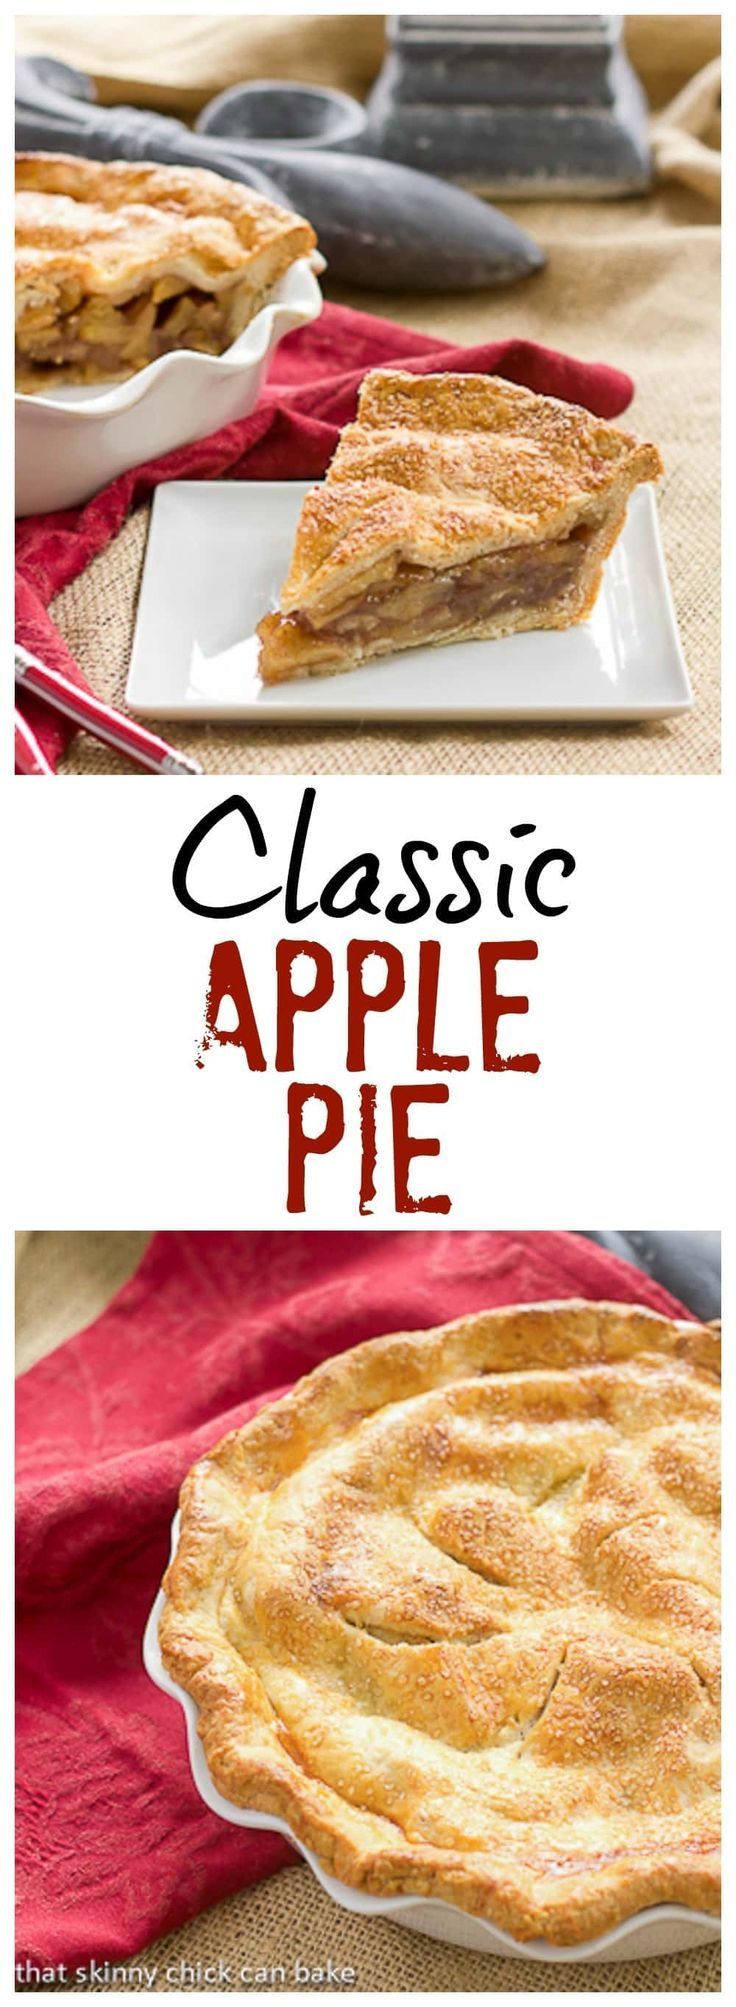 Classic Apple Pie #applepie | The perfect apple pie recipe @lizzydo